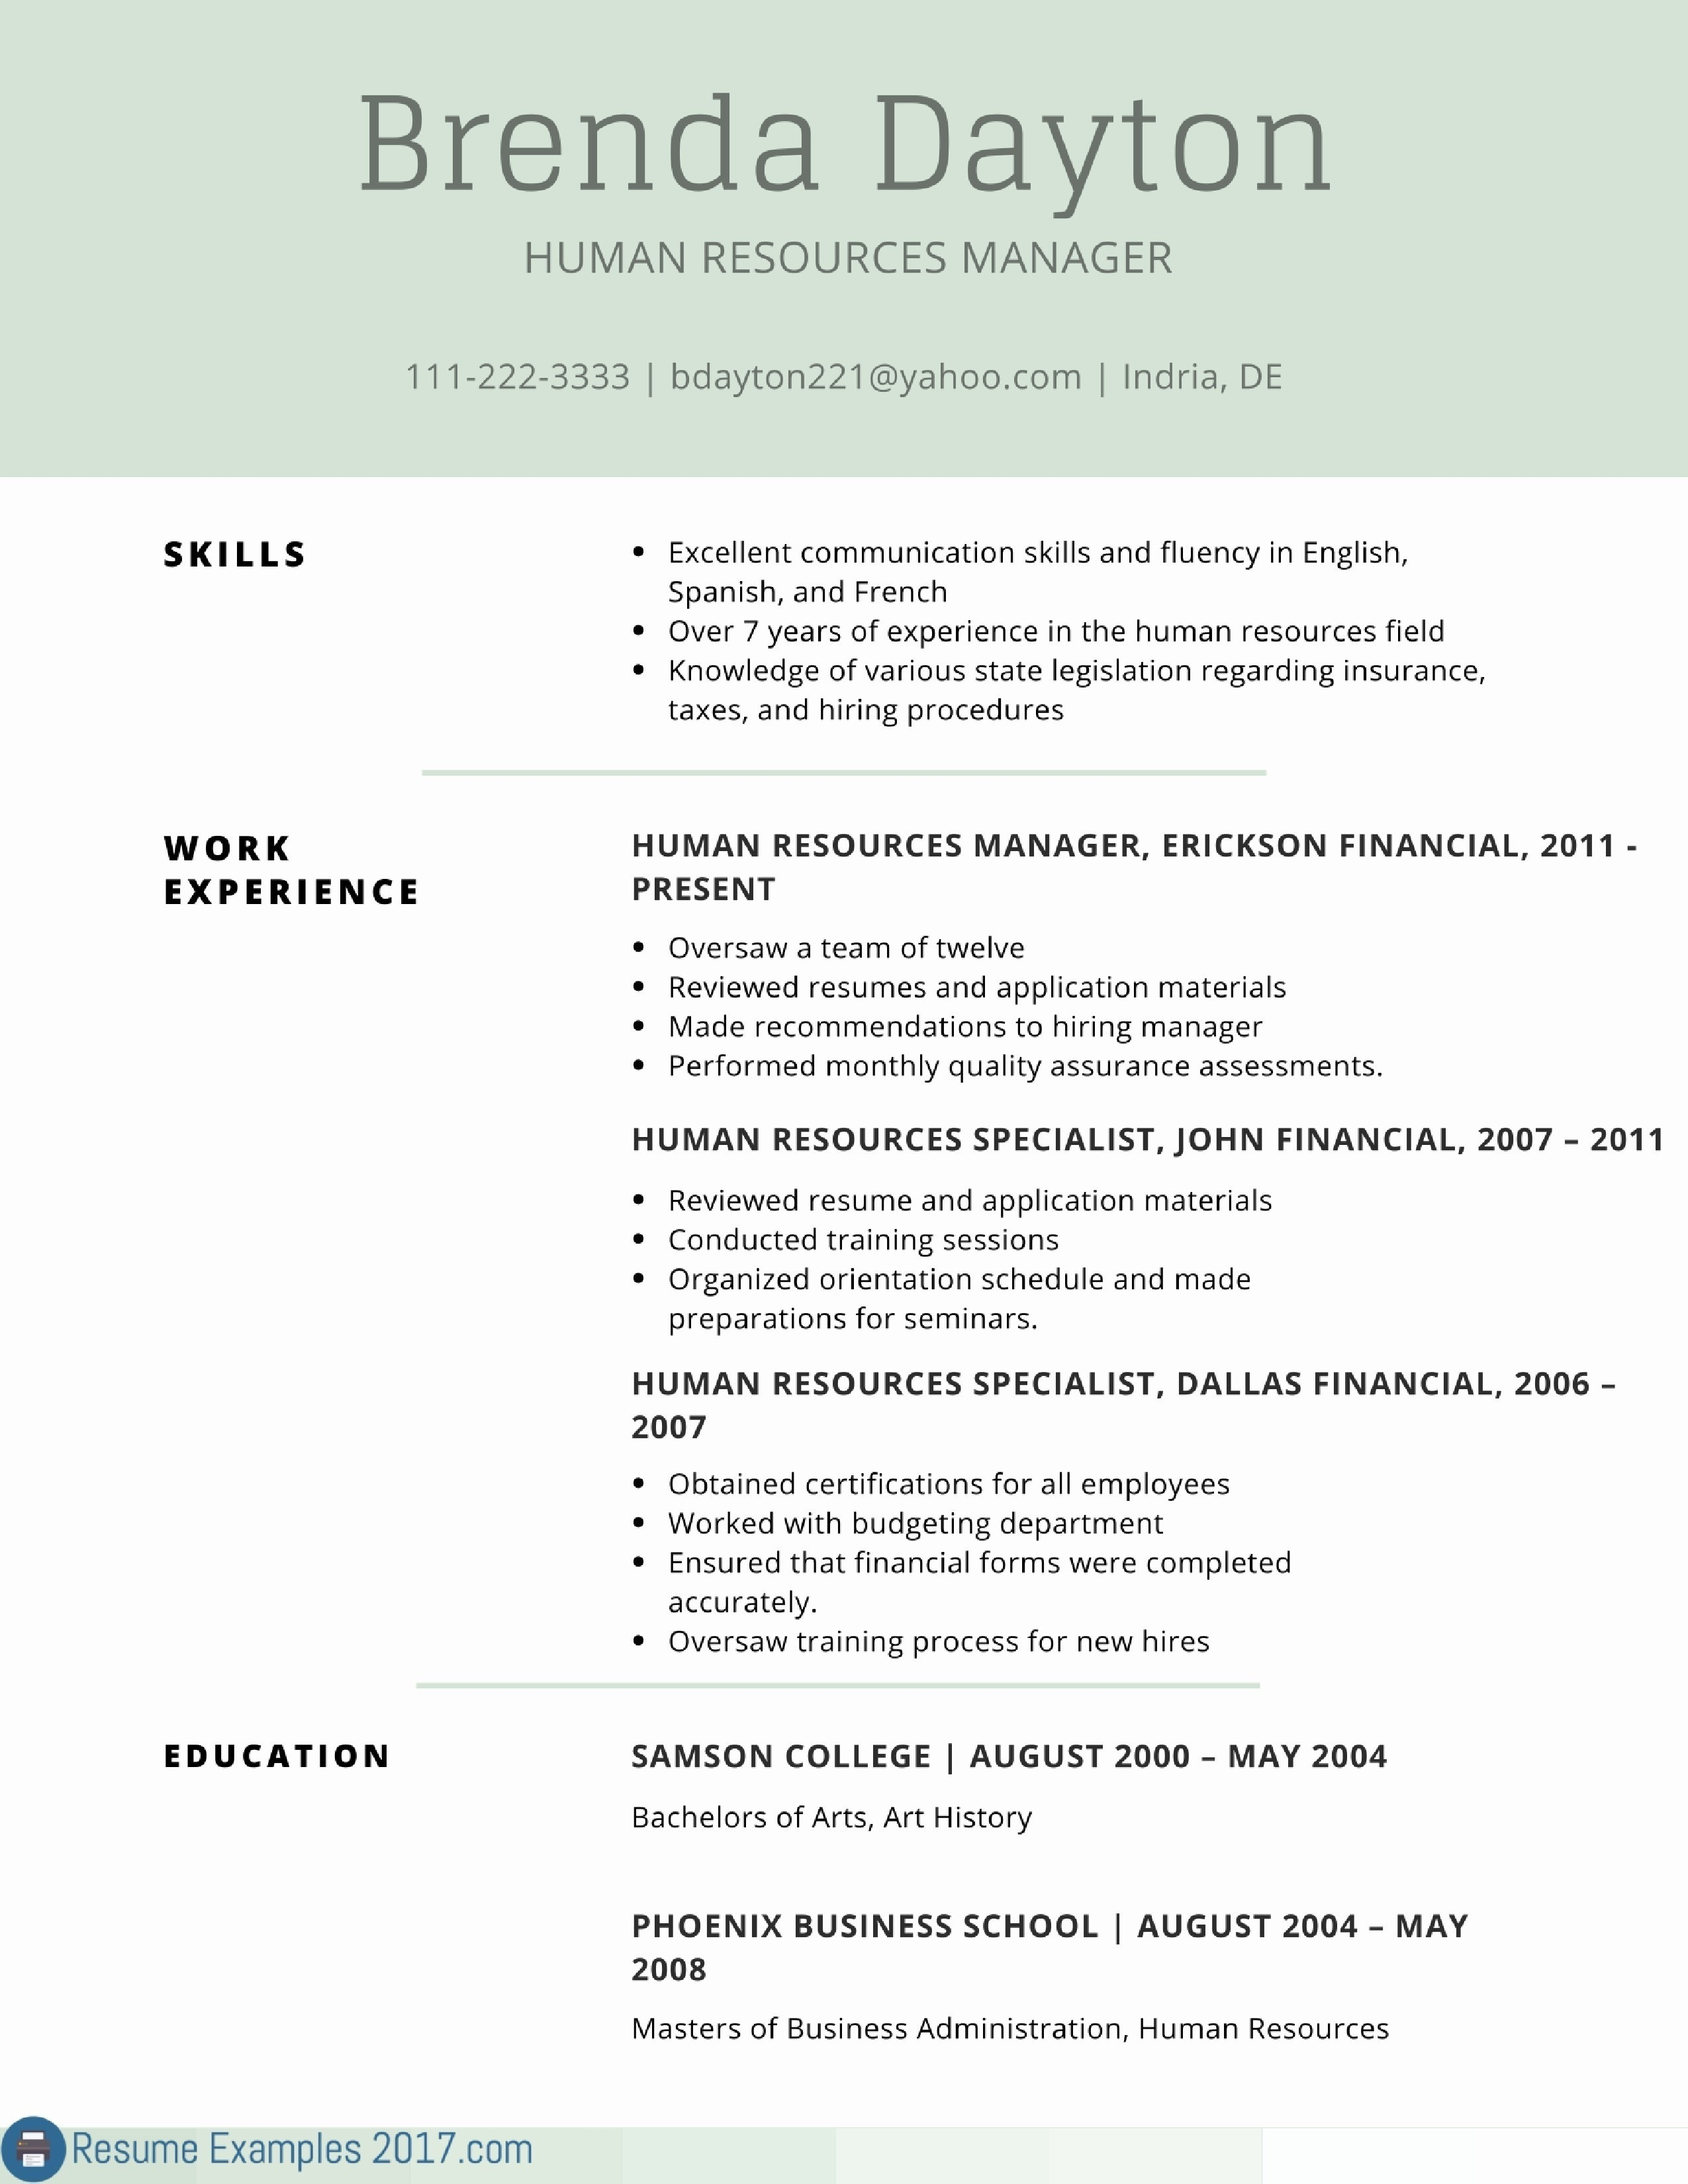 Human Resources Director Resume - Human Resource Resume Example Paragraphrewriter